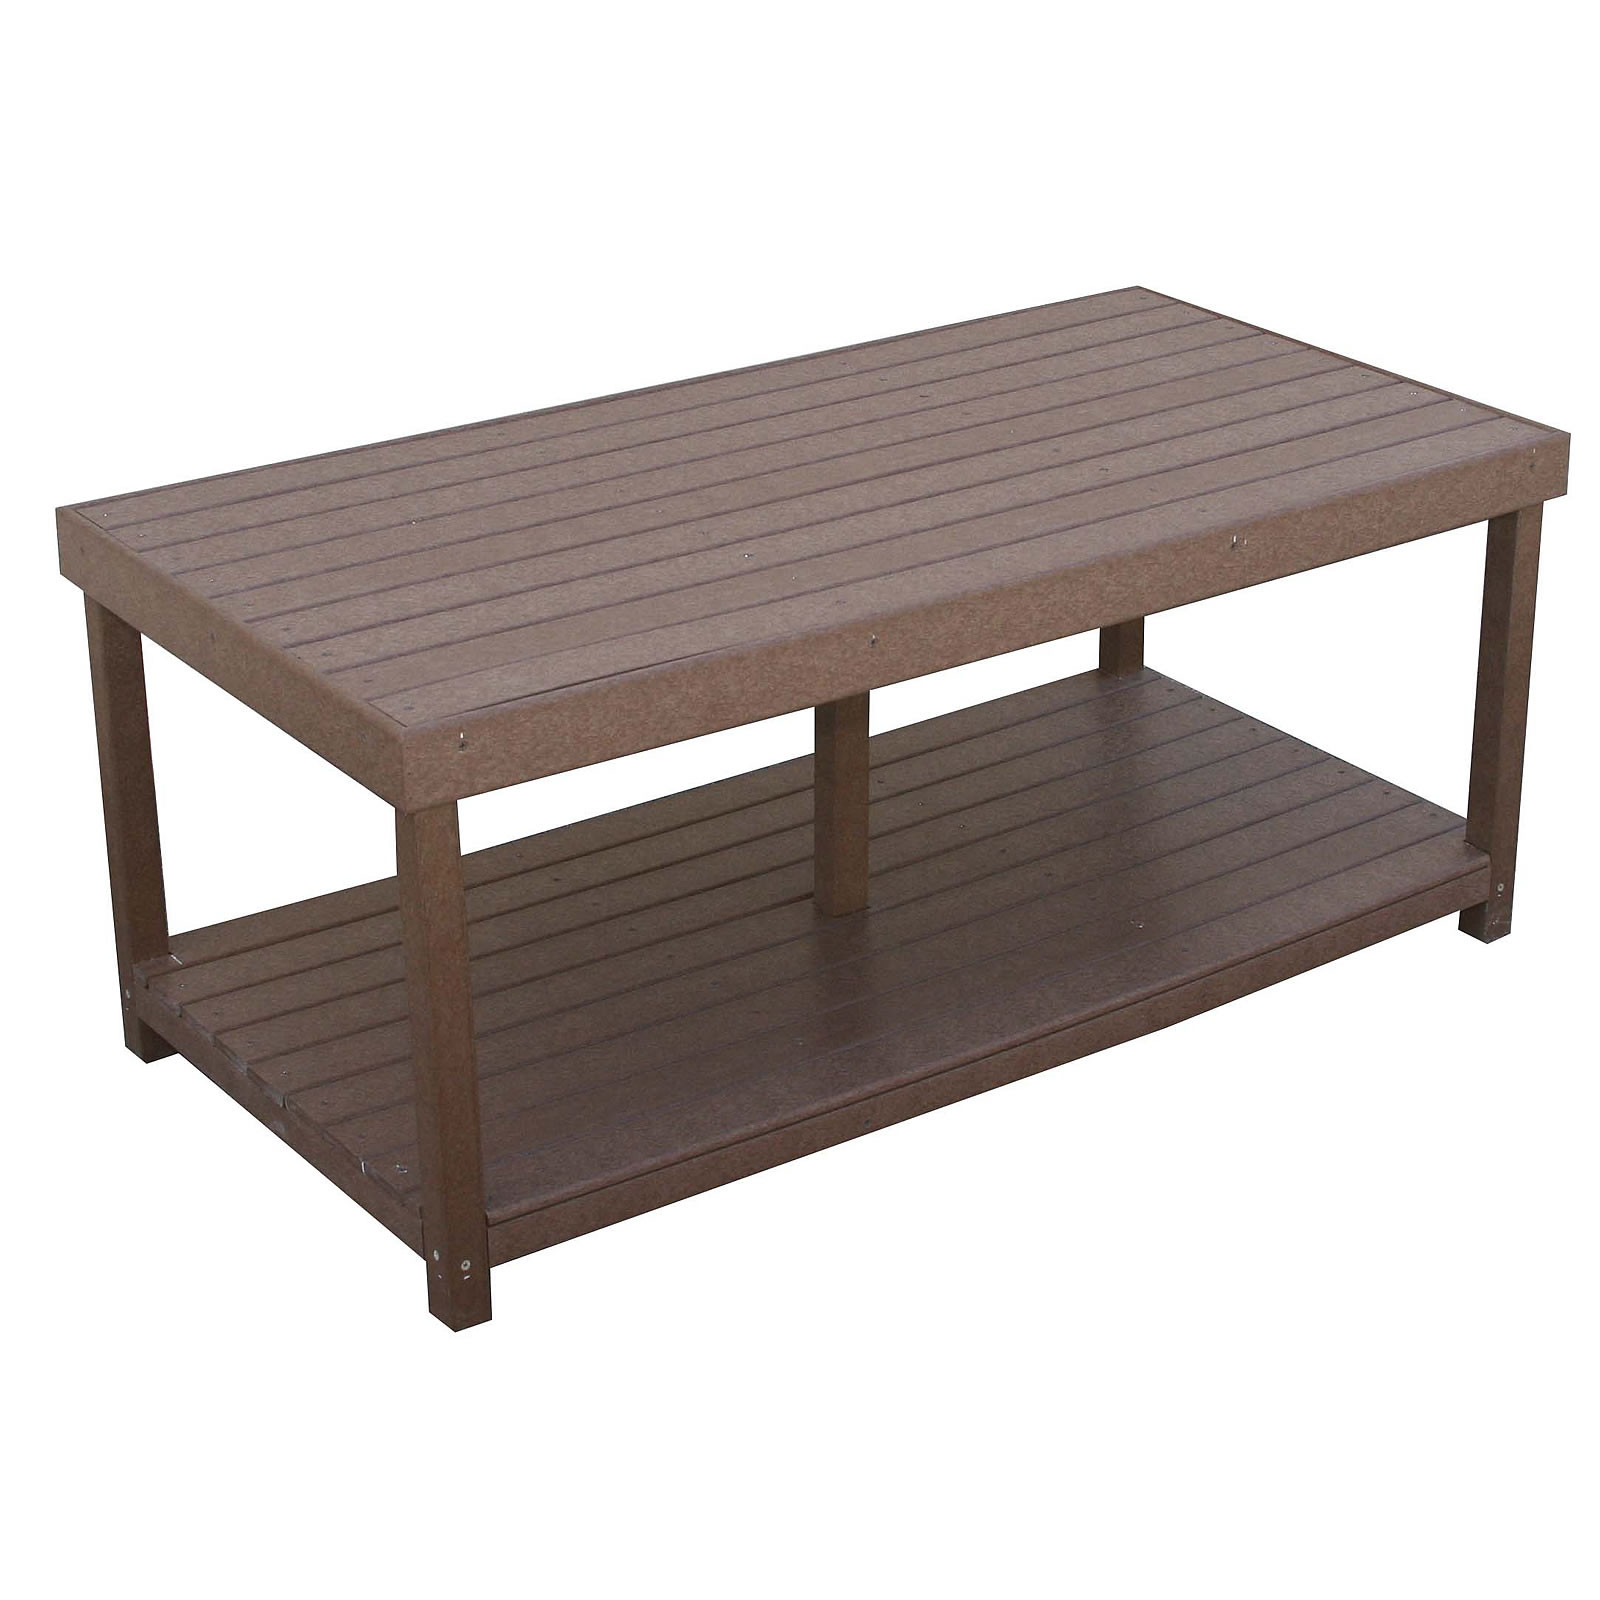 Eagle One - Collier Bay Coffee Table